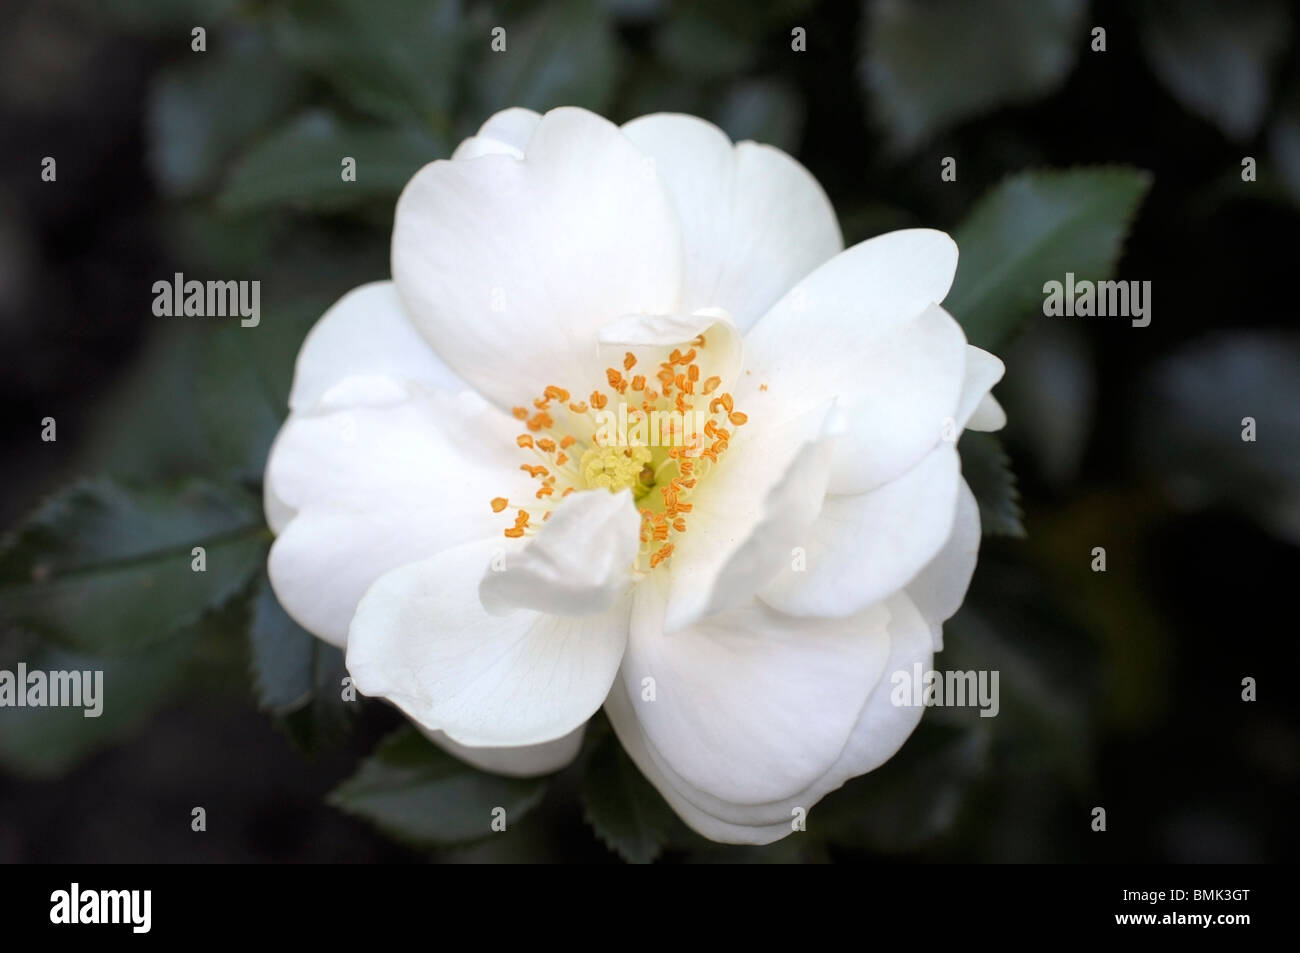 White Vigorosa Rose - Stock Image